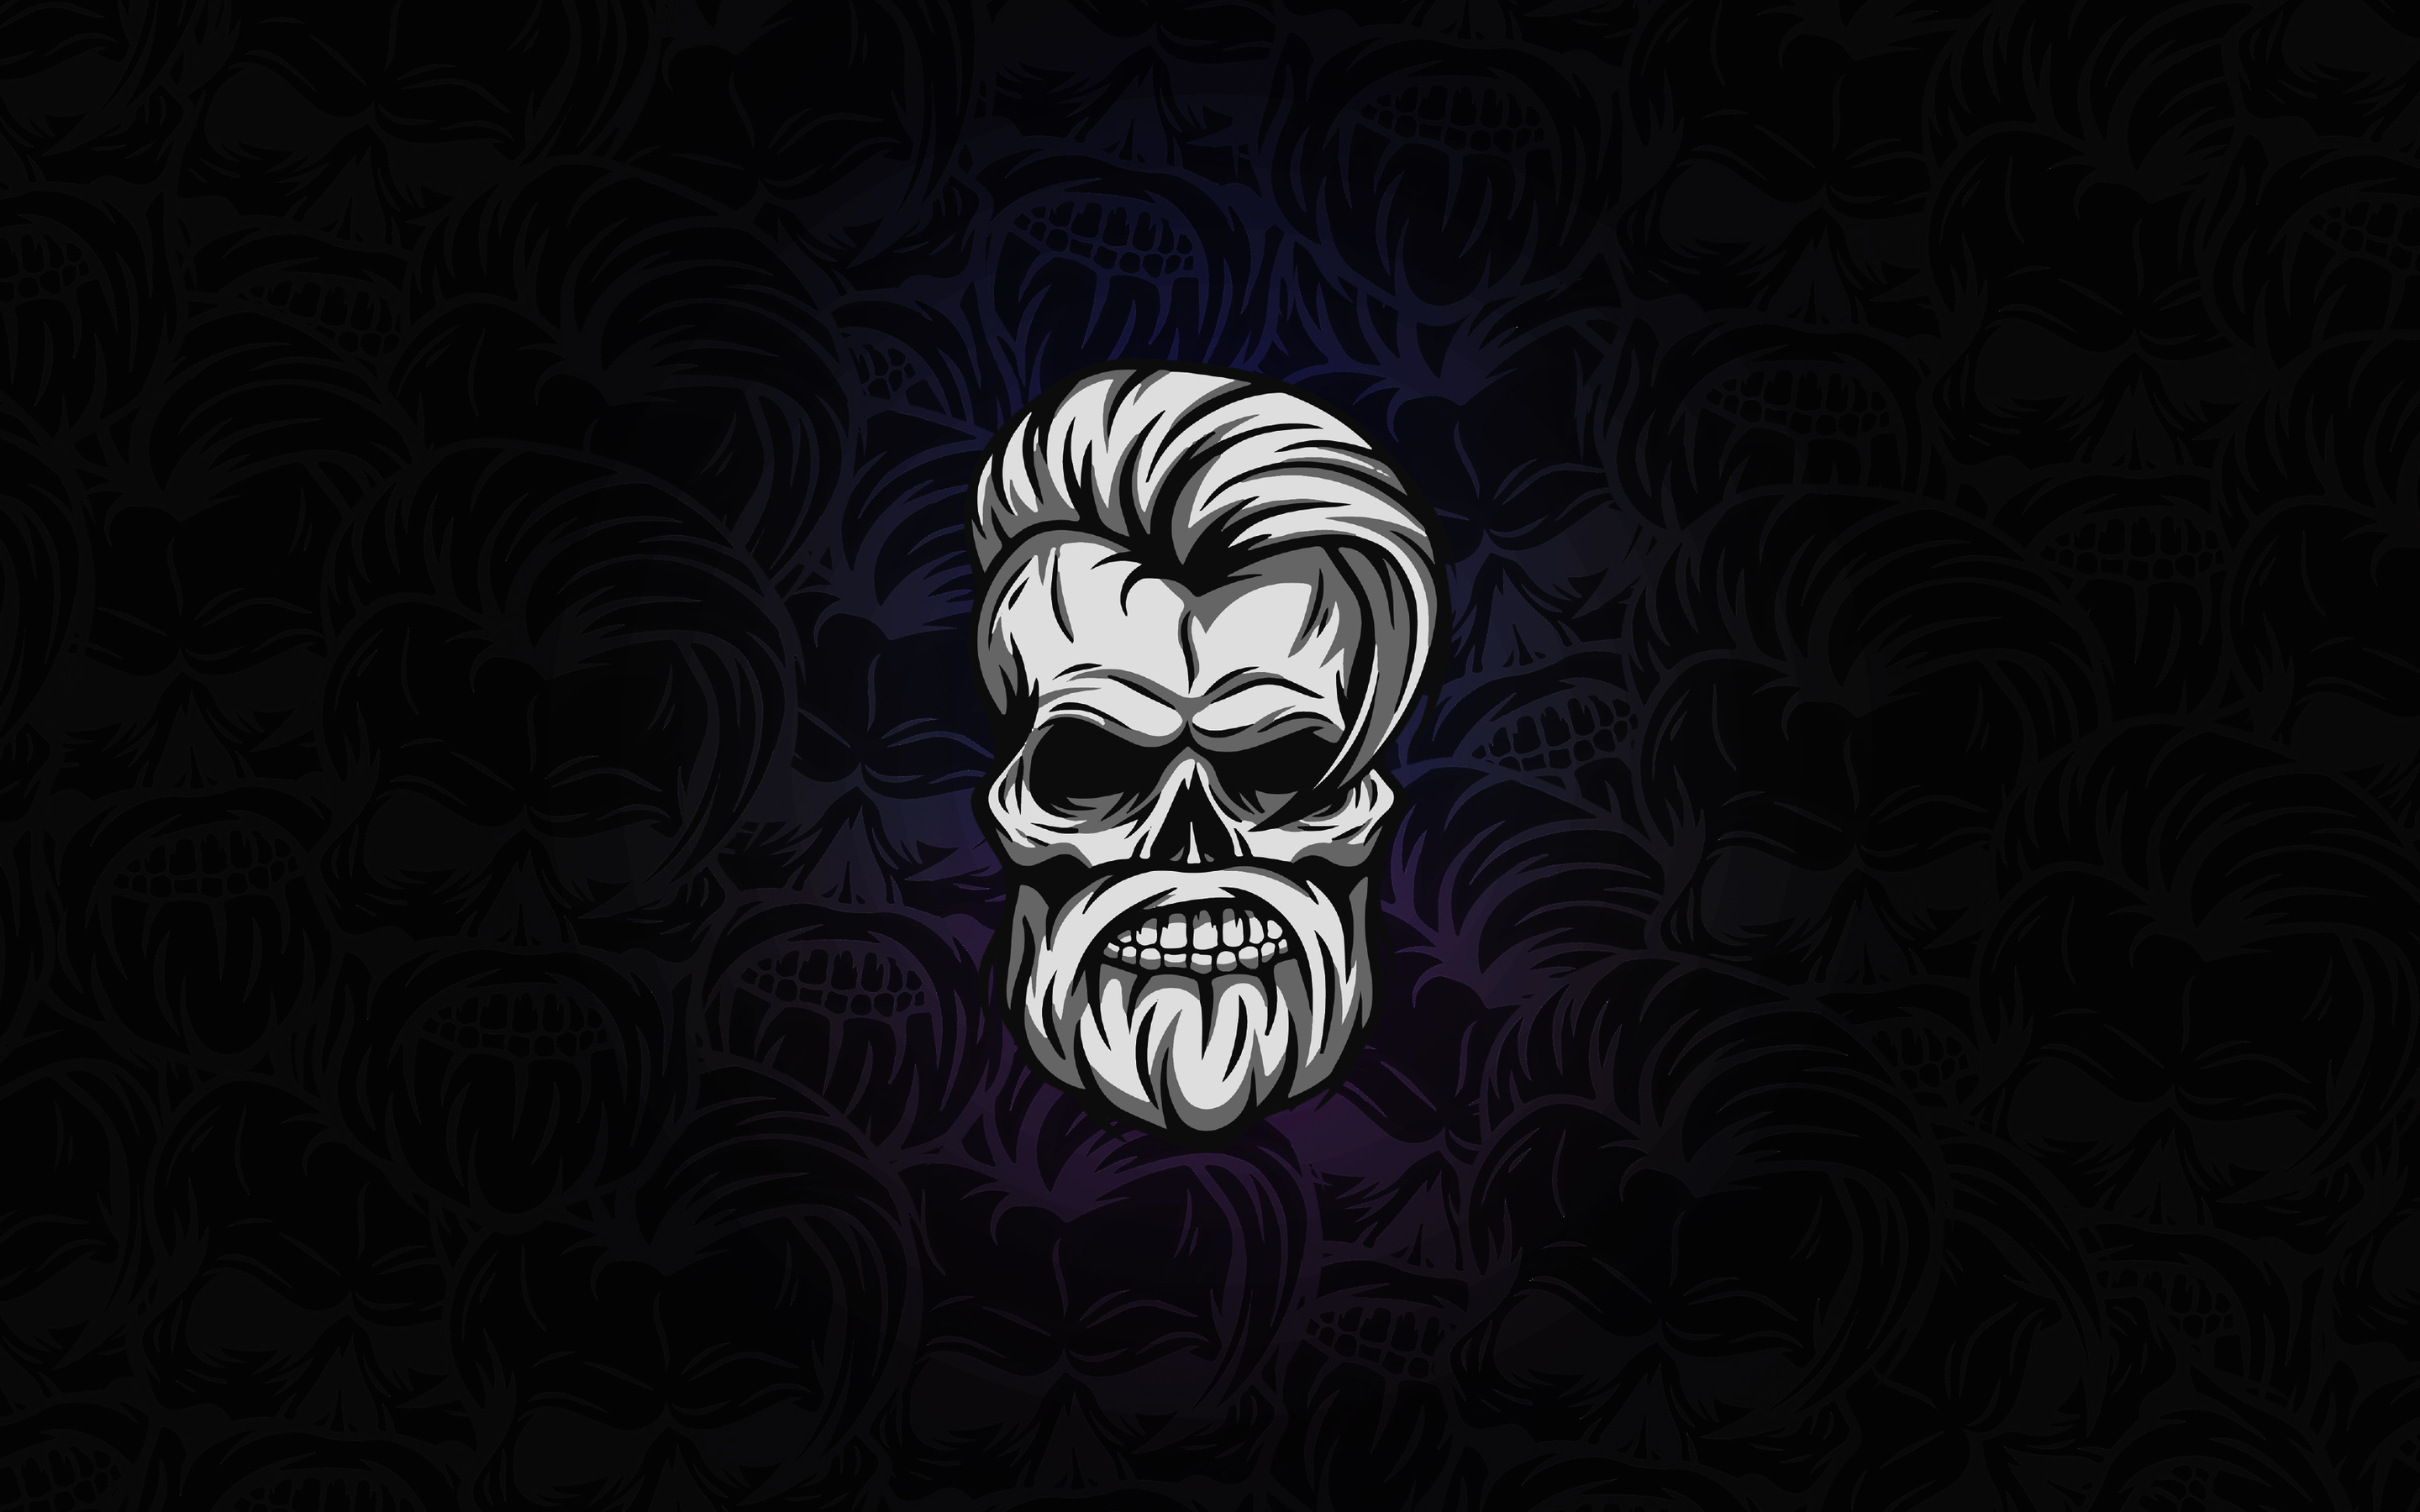 2880x1800 Beard Skull Dark 4k Macbook Pro Retina Hd 4k Wallpapers Images Backgrounds Photos And Pictures